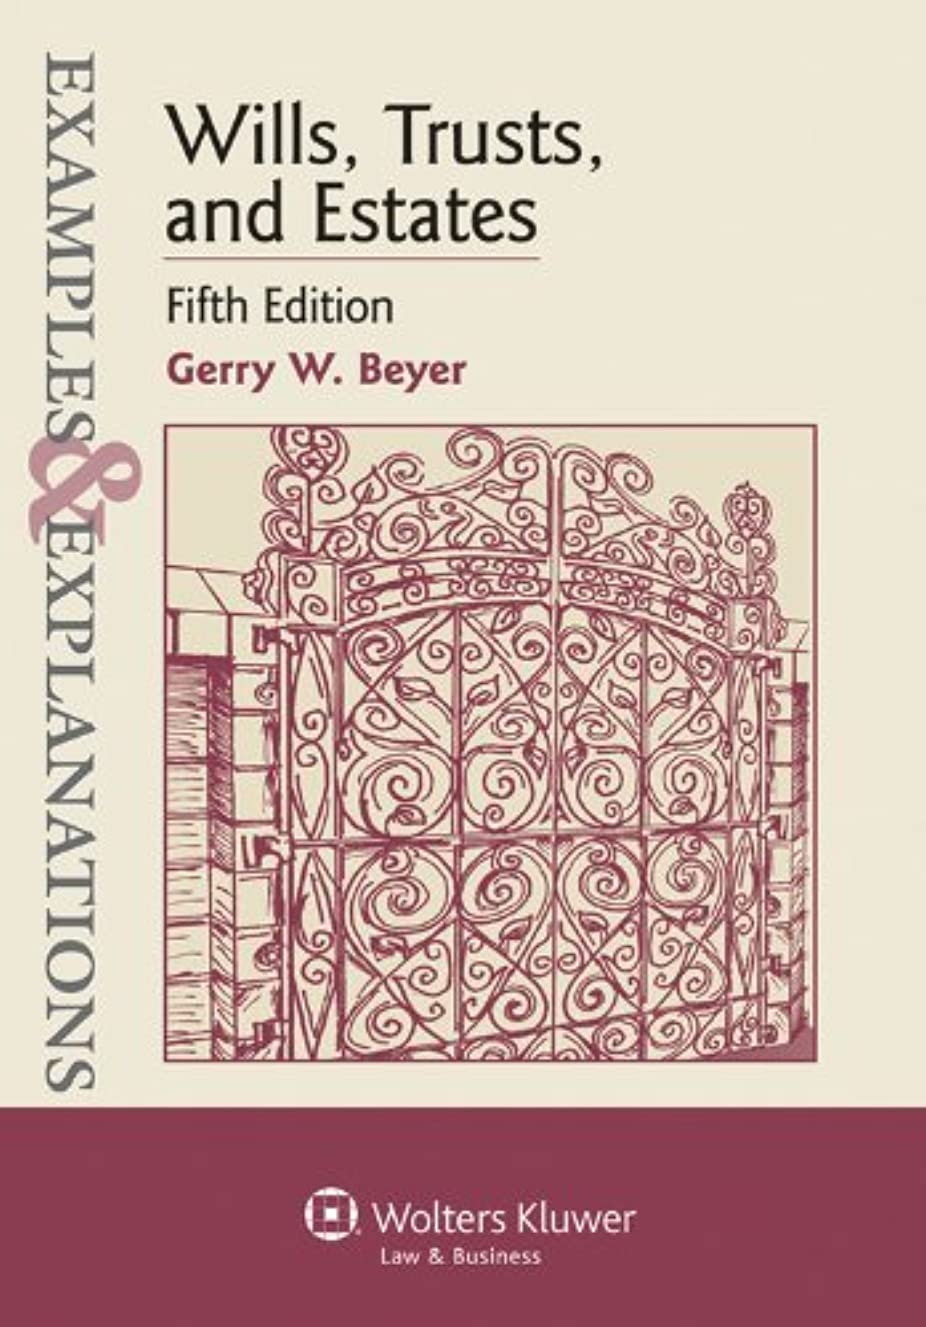 By Gerry W. Beyer - Wills, Trusts, and Estates (5th Edition) (5/23/12)